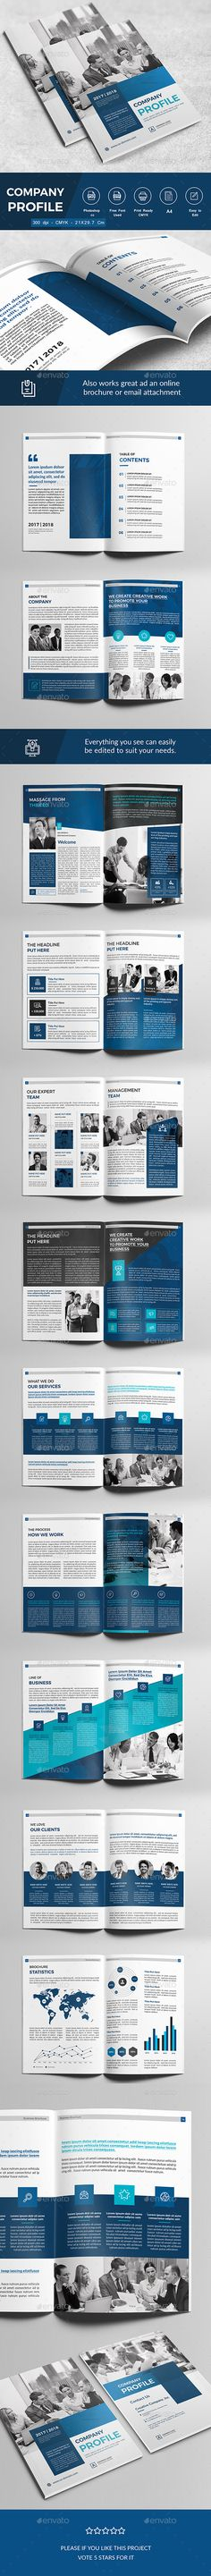 Company Profile Company profile, Corporate brochure and Brochure - business company profile template